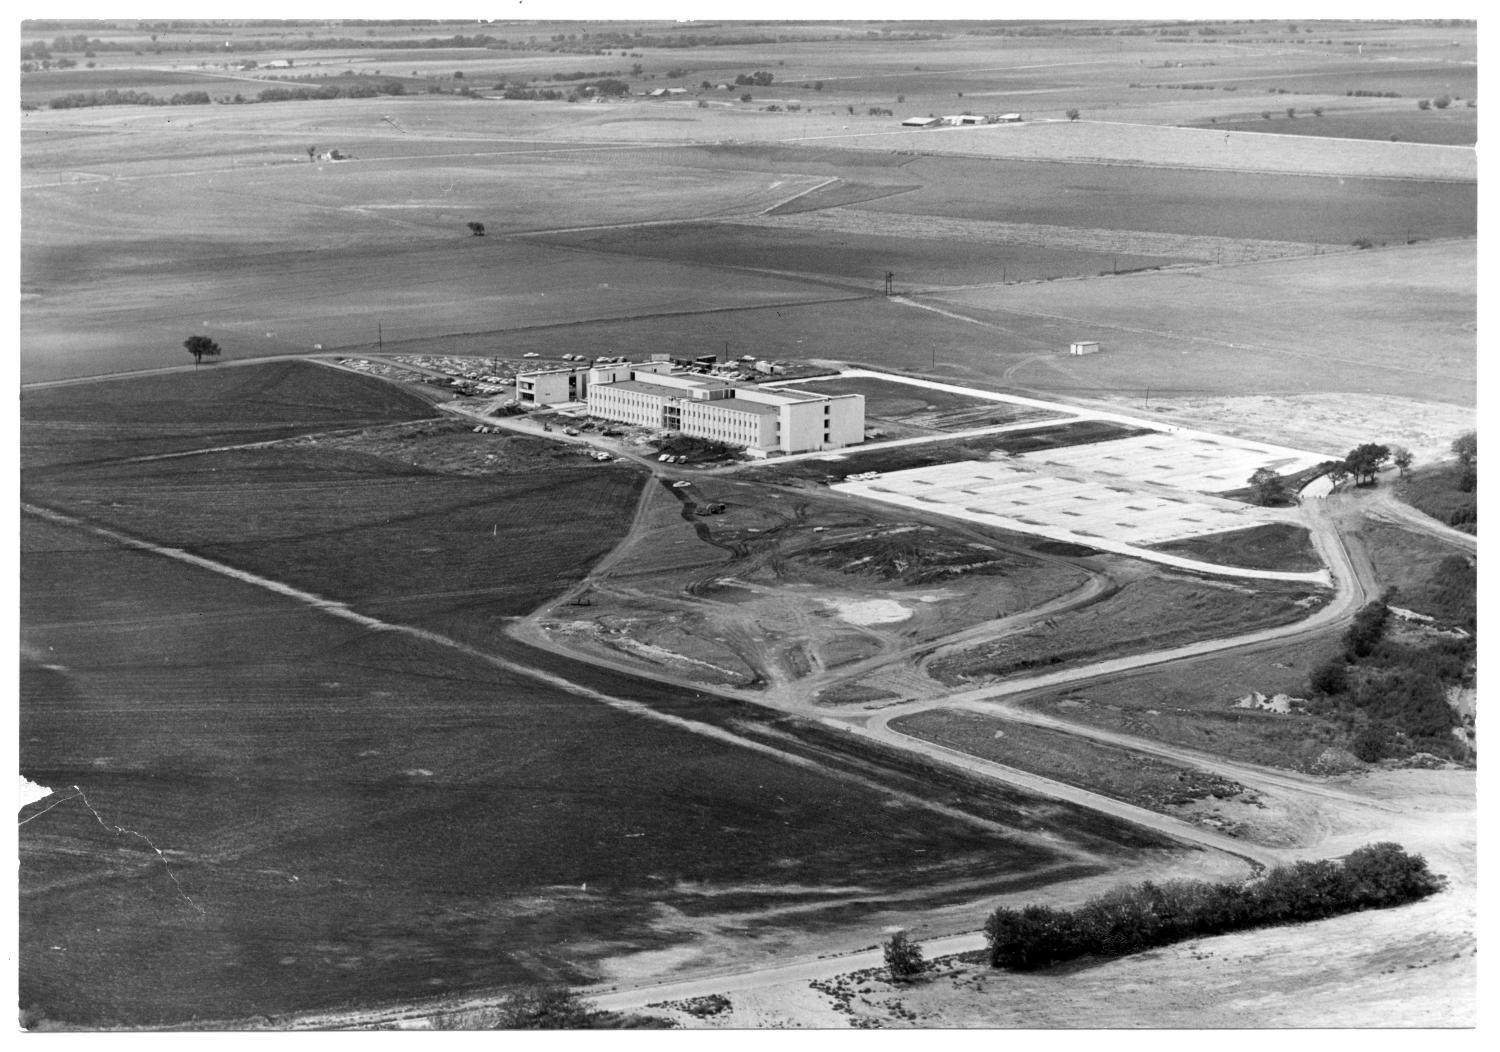 Southwest Center for Advanced Studies, Photograph of an aerial view of Southwest Center for Advanced Studies, now known as University of Texas - Dallas. There is a parking lot on the left side of the building. The building is surrounded by roads and open fields.,